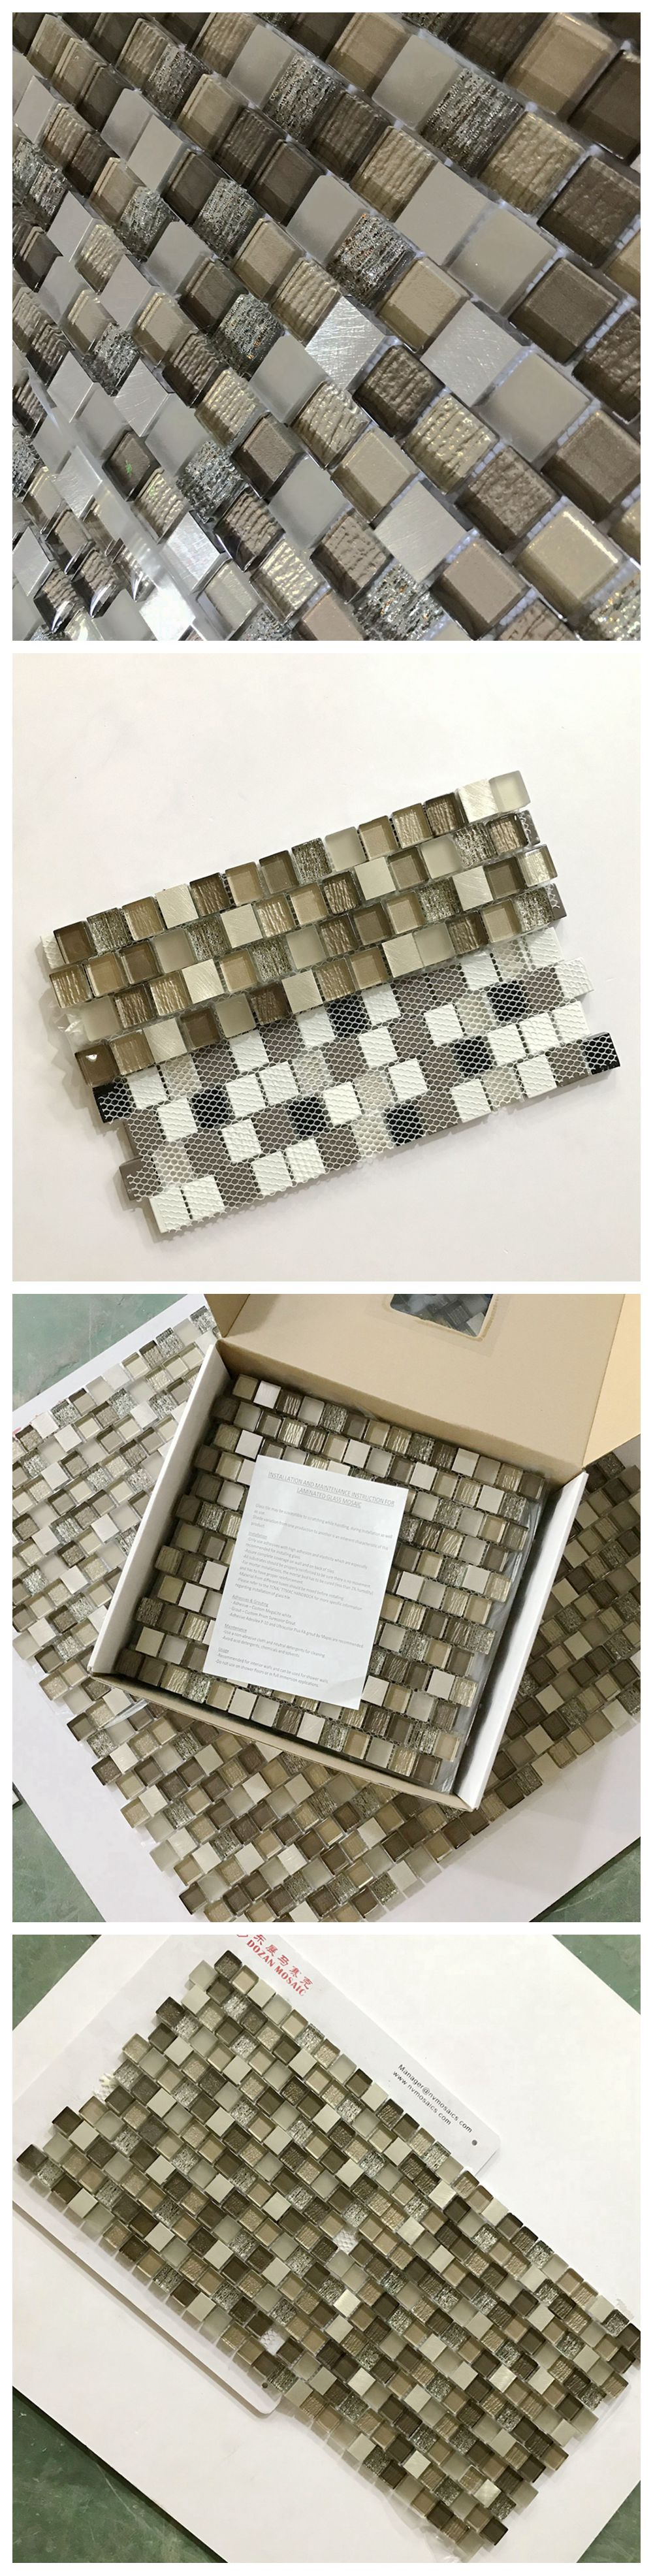 Glass Mix Brown Onyx Marble Mosaic Tile/Moonight Cheap Square White and Brown Glass Mosaic